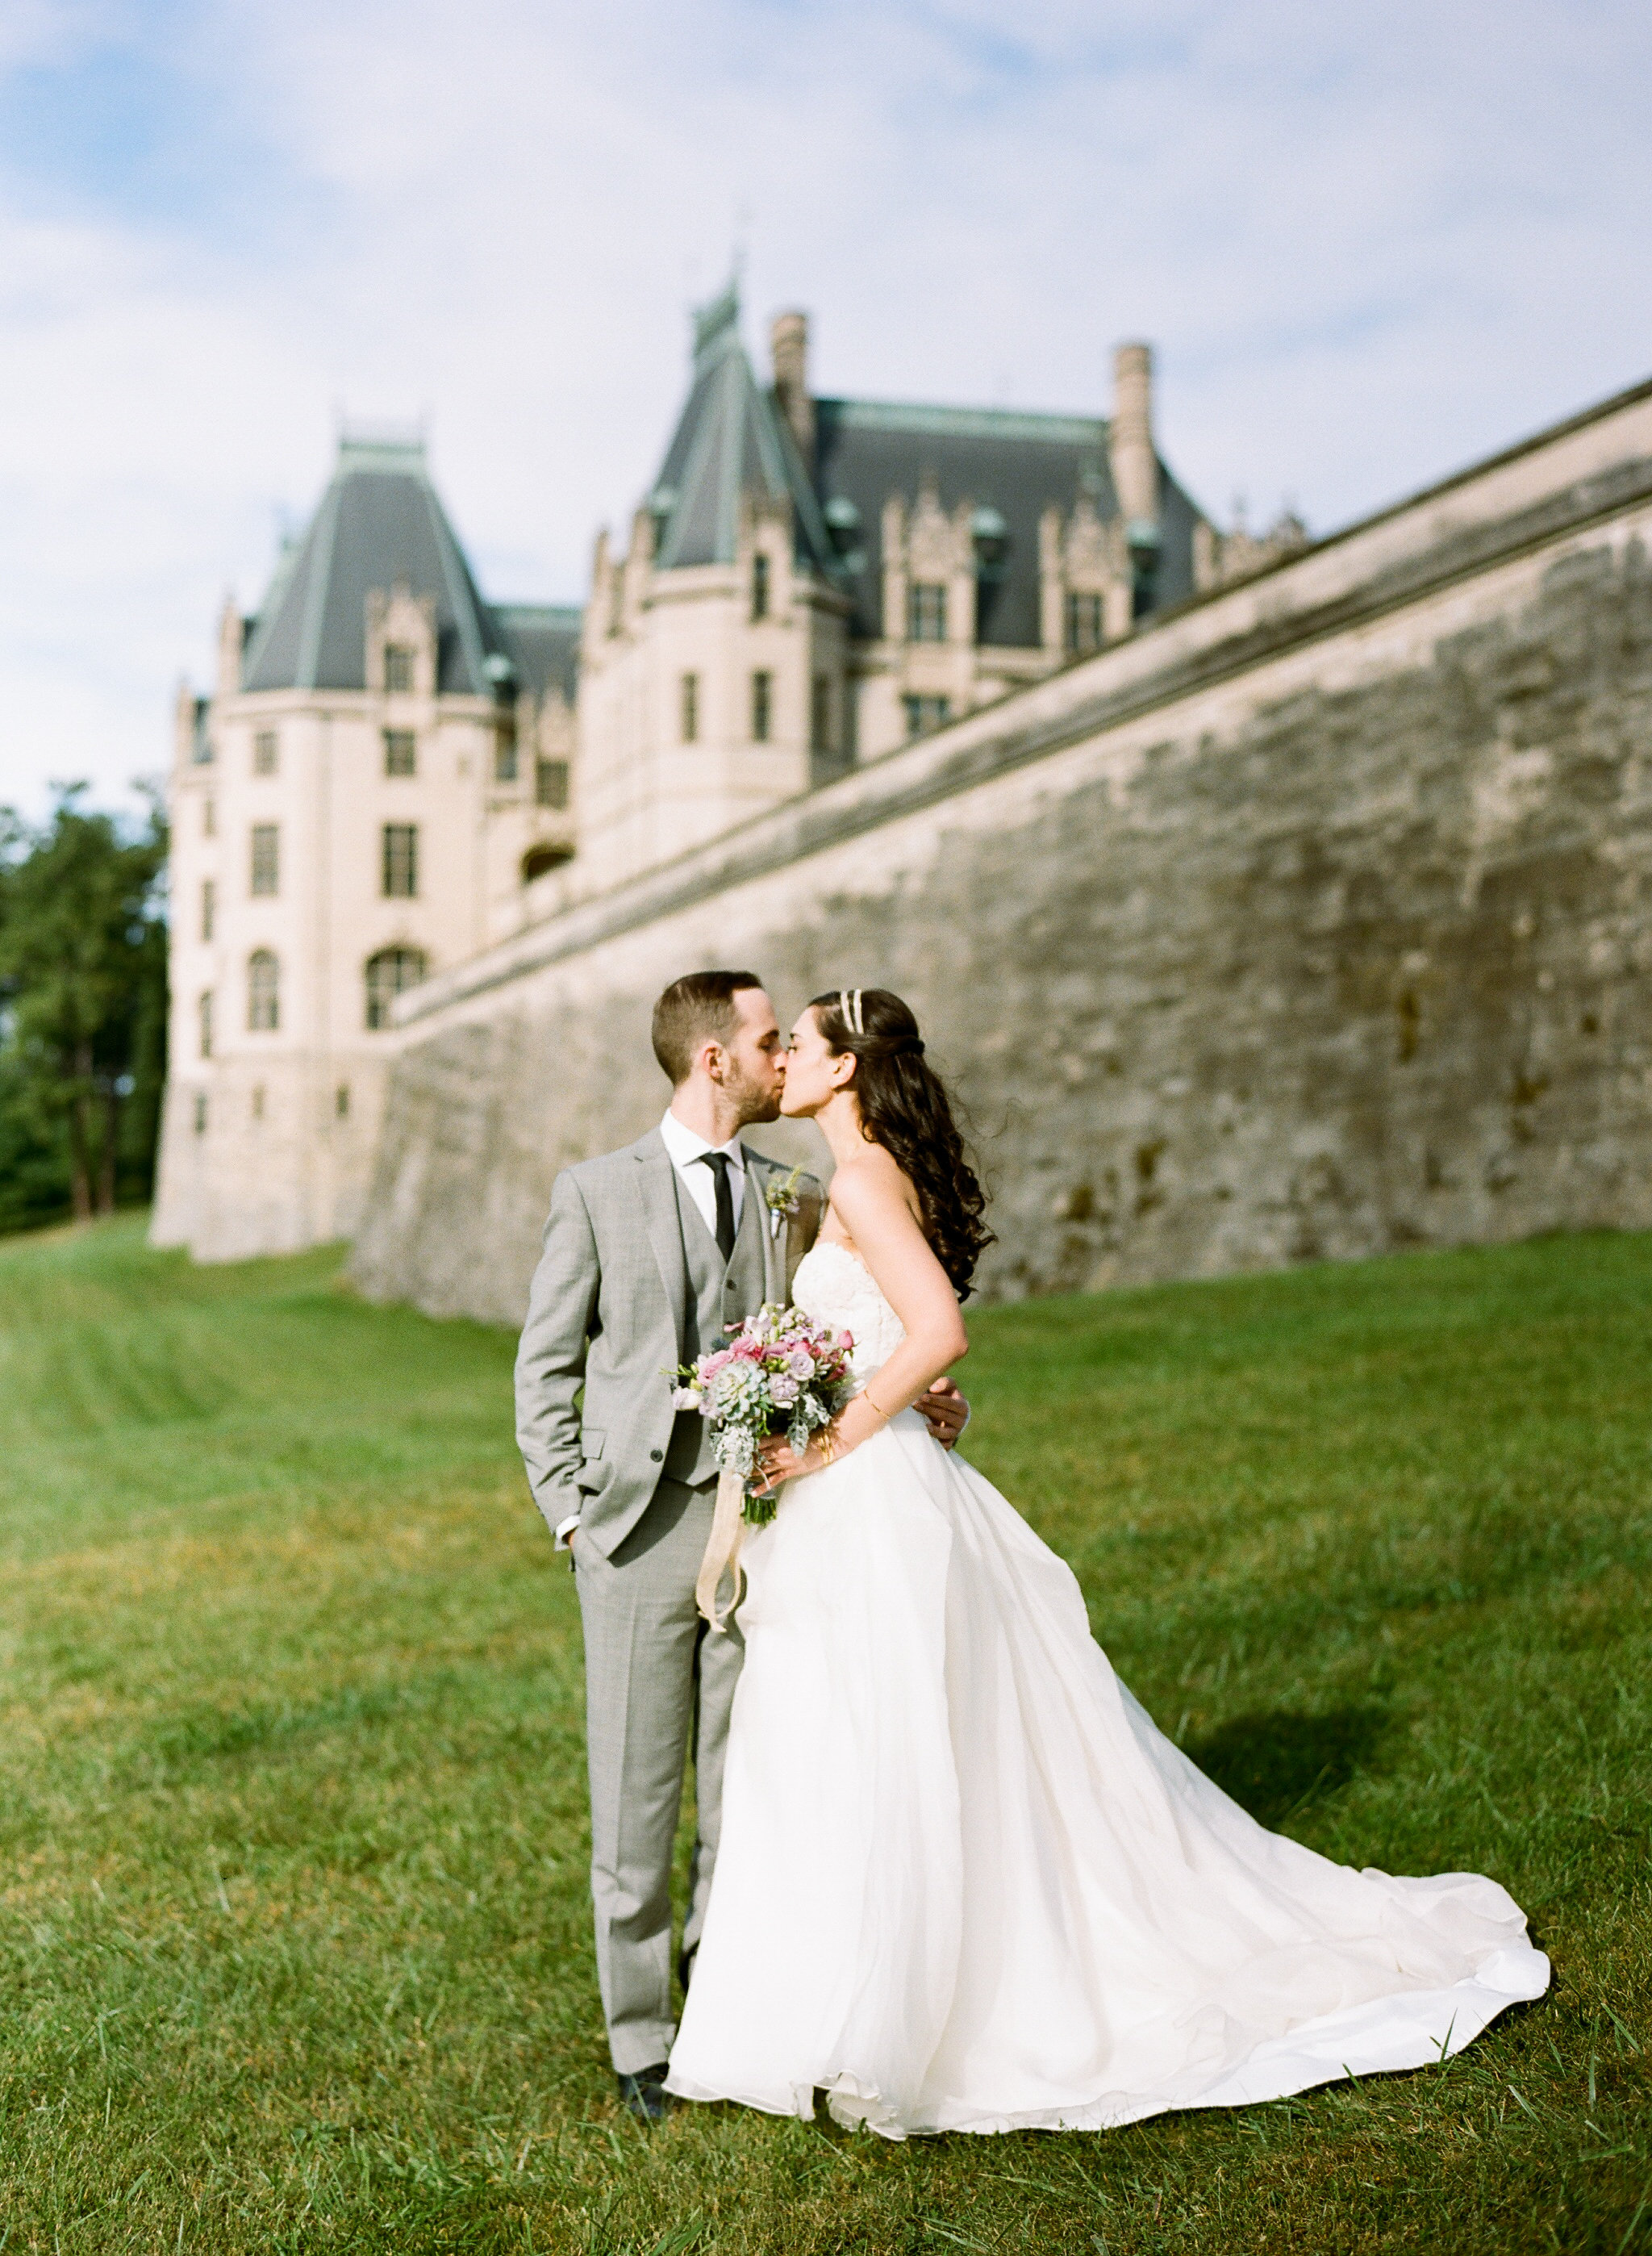 melisa-jackson-asheville-mountain-wedding-1.jpg